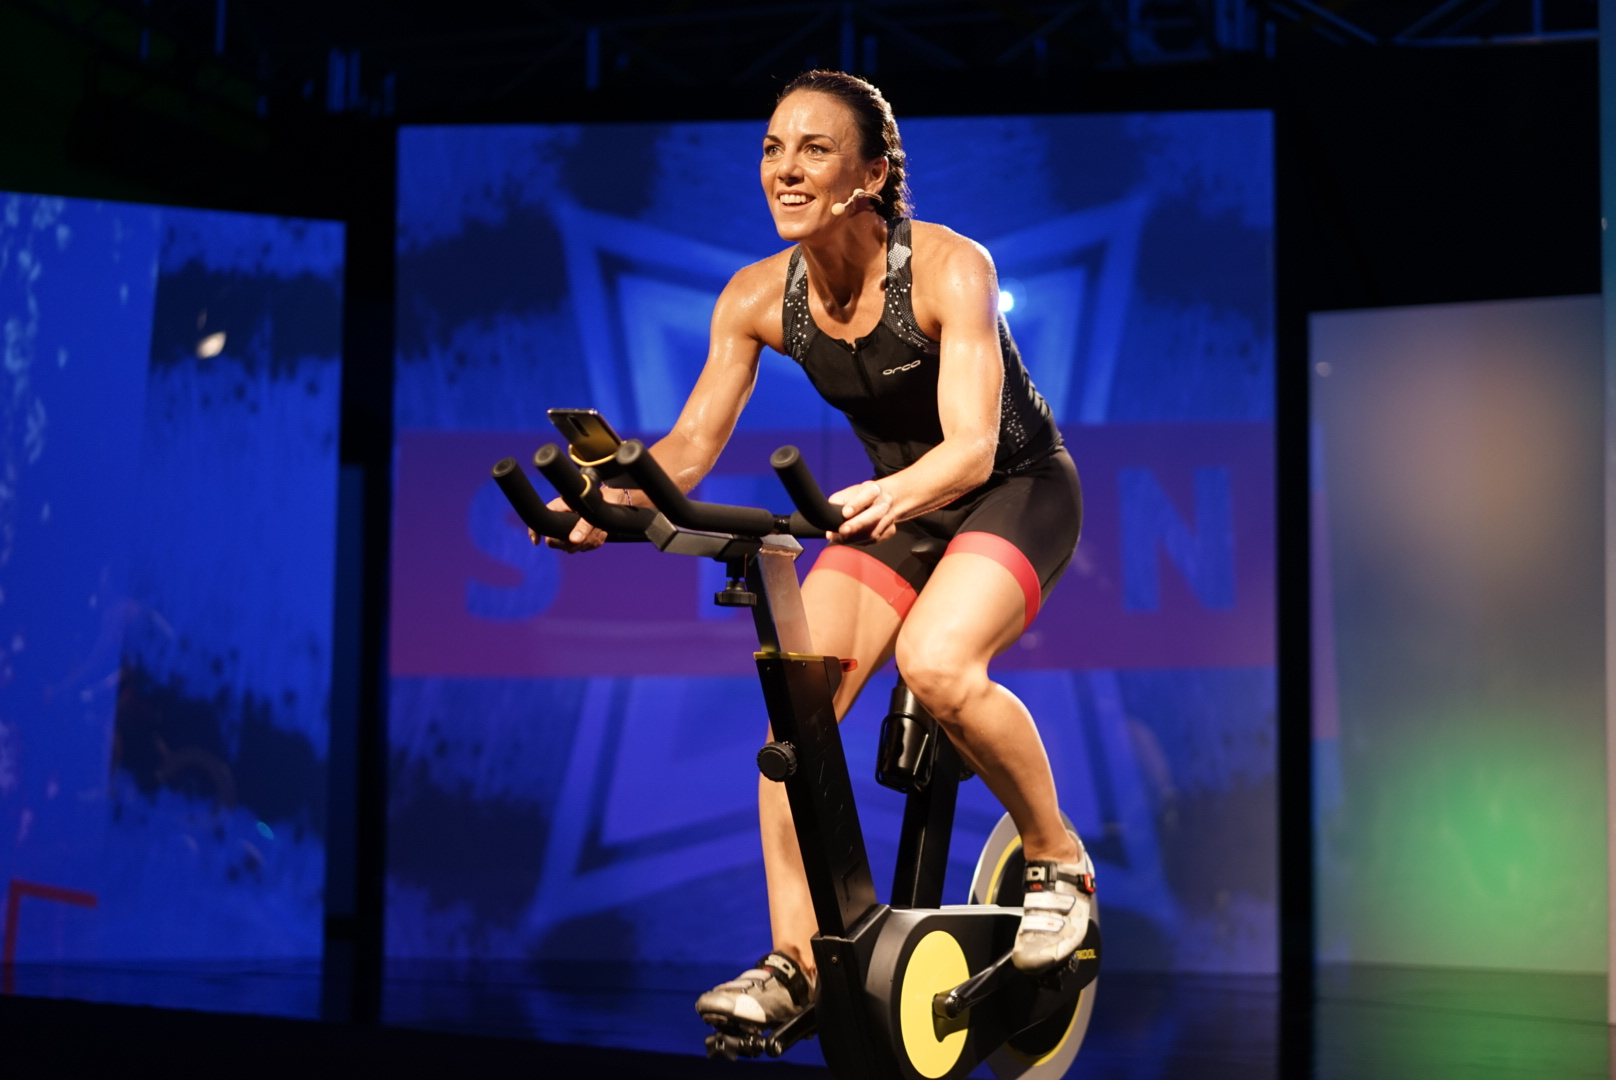 ISABEL DEL BARRIO ONMYTRAININGSHOES BKOOL FITNESS CICLISMO INDOOR